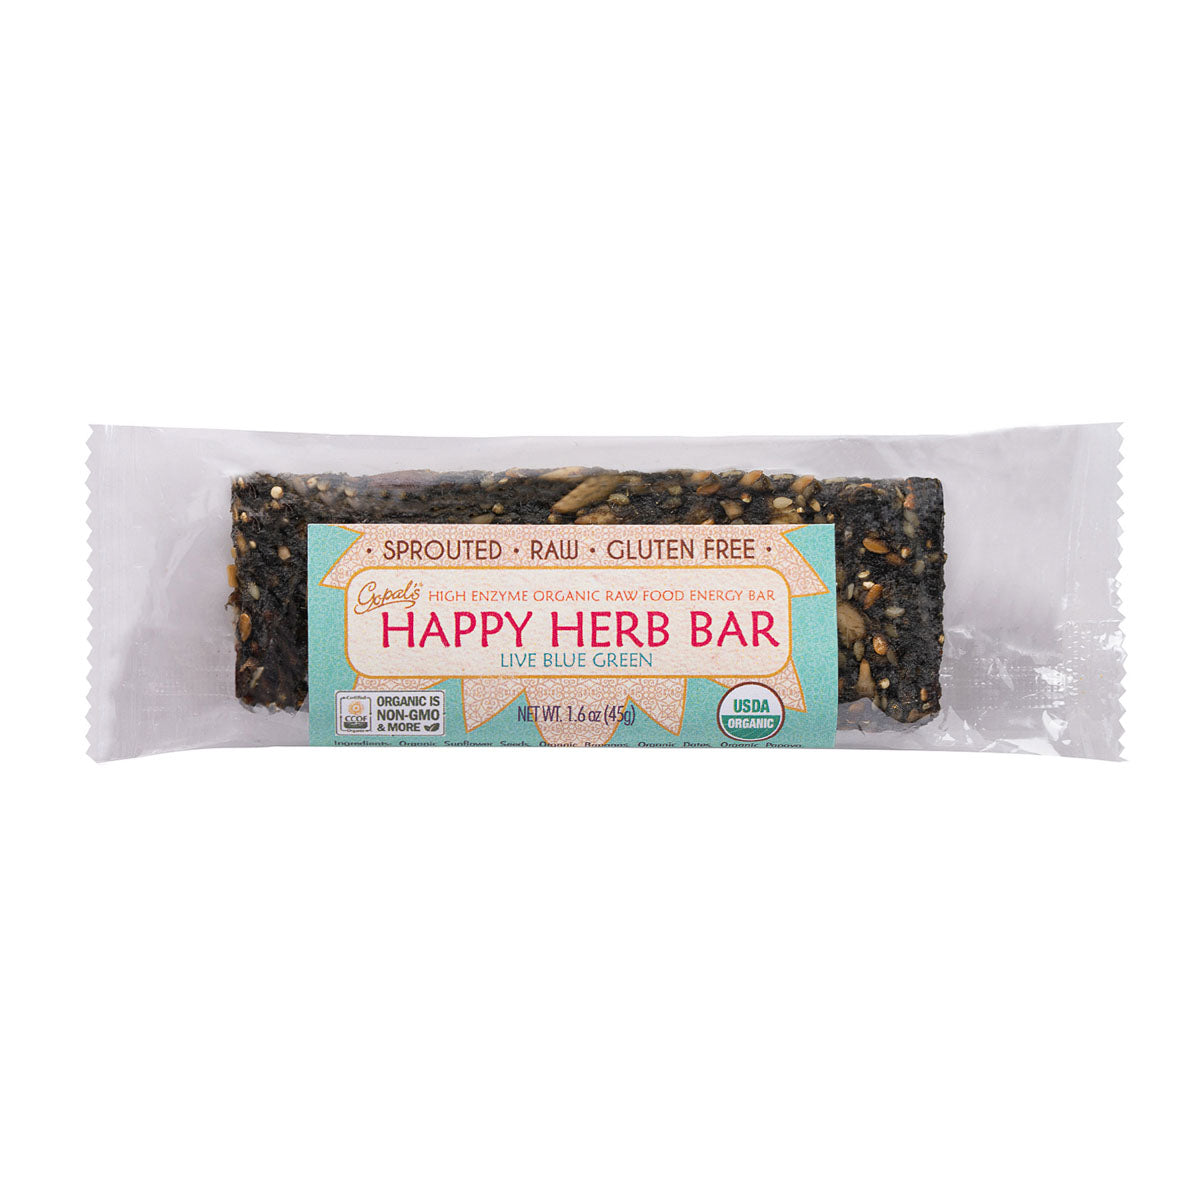 Gopals Live Blue Green Happy Herb Bar (1.6oz / 45g)